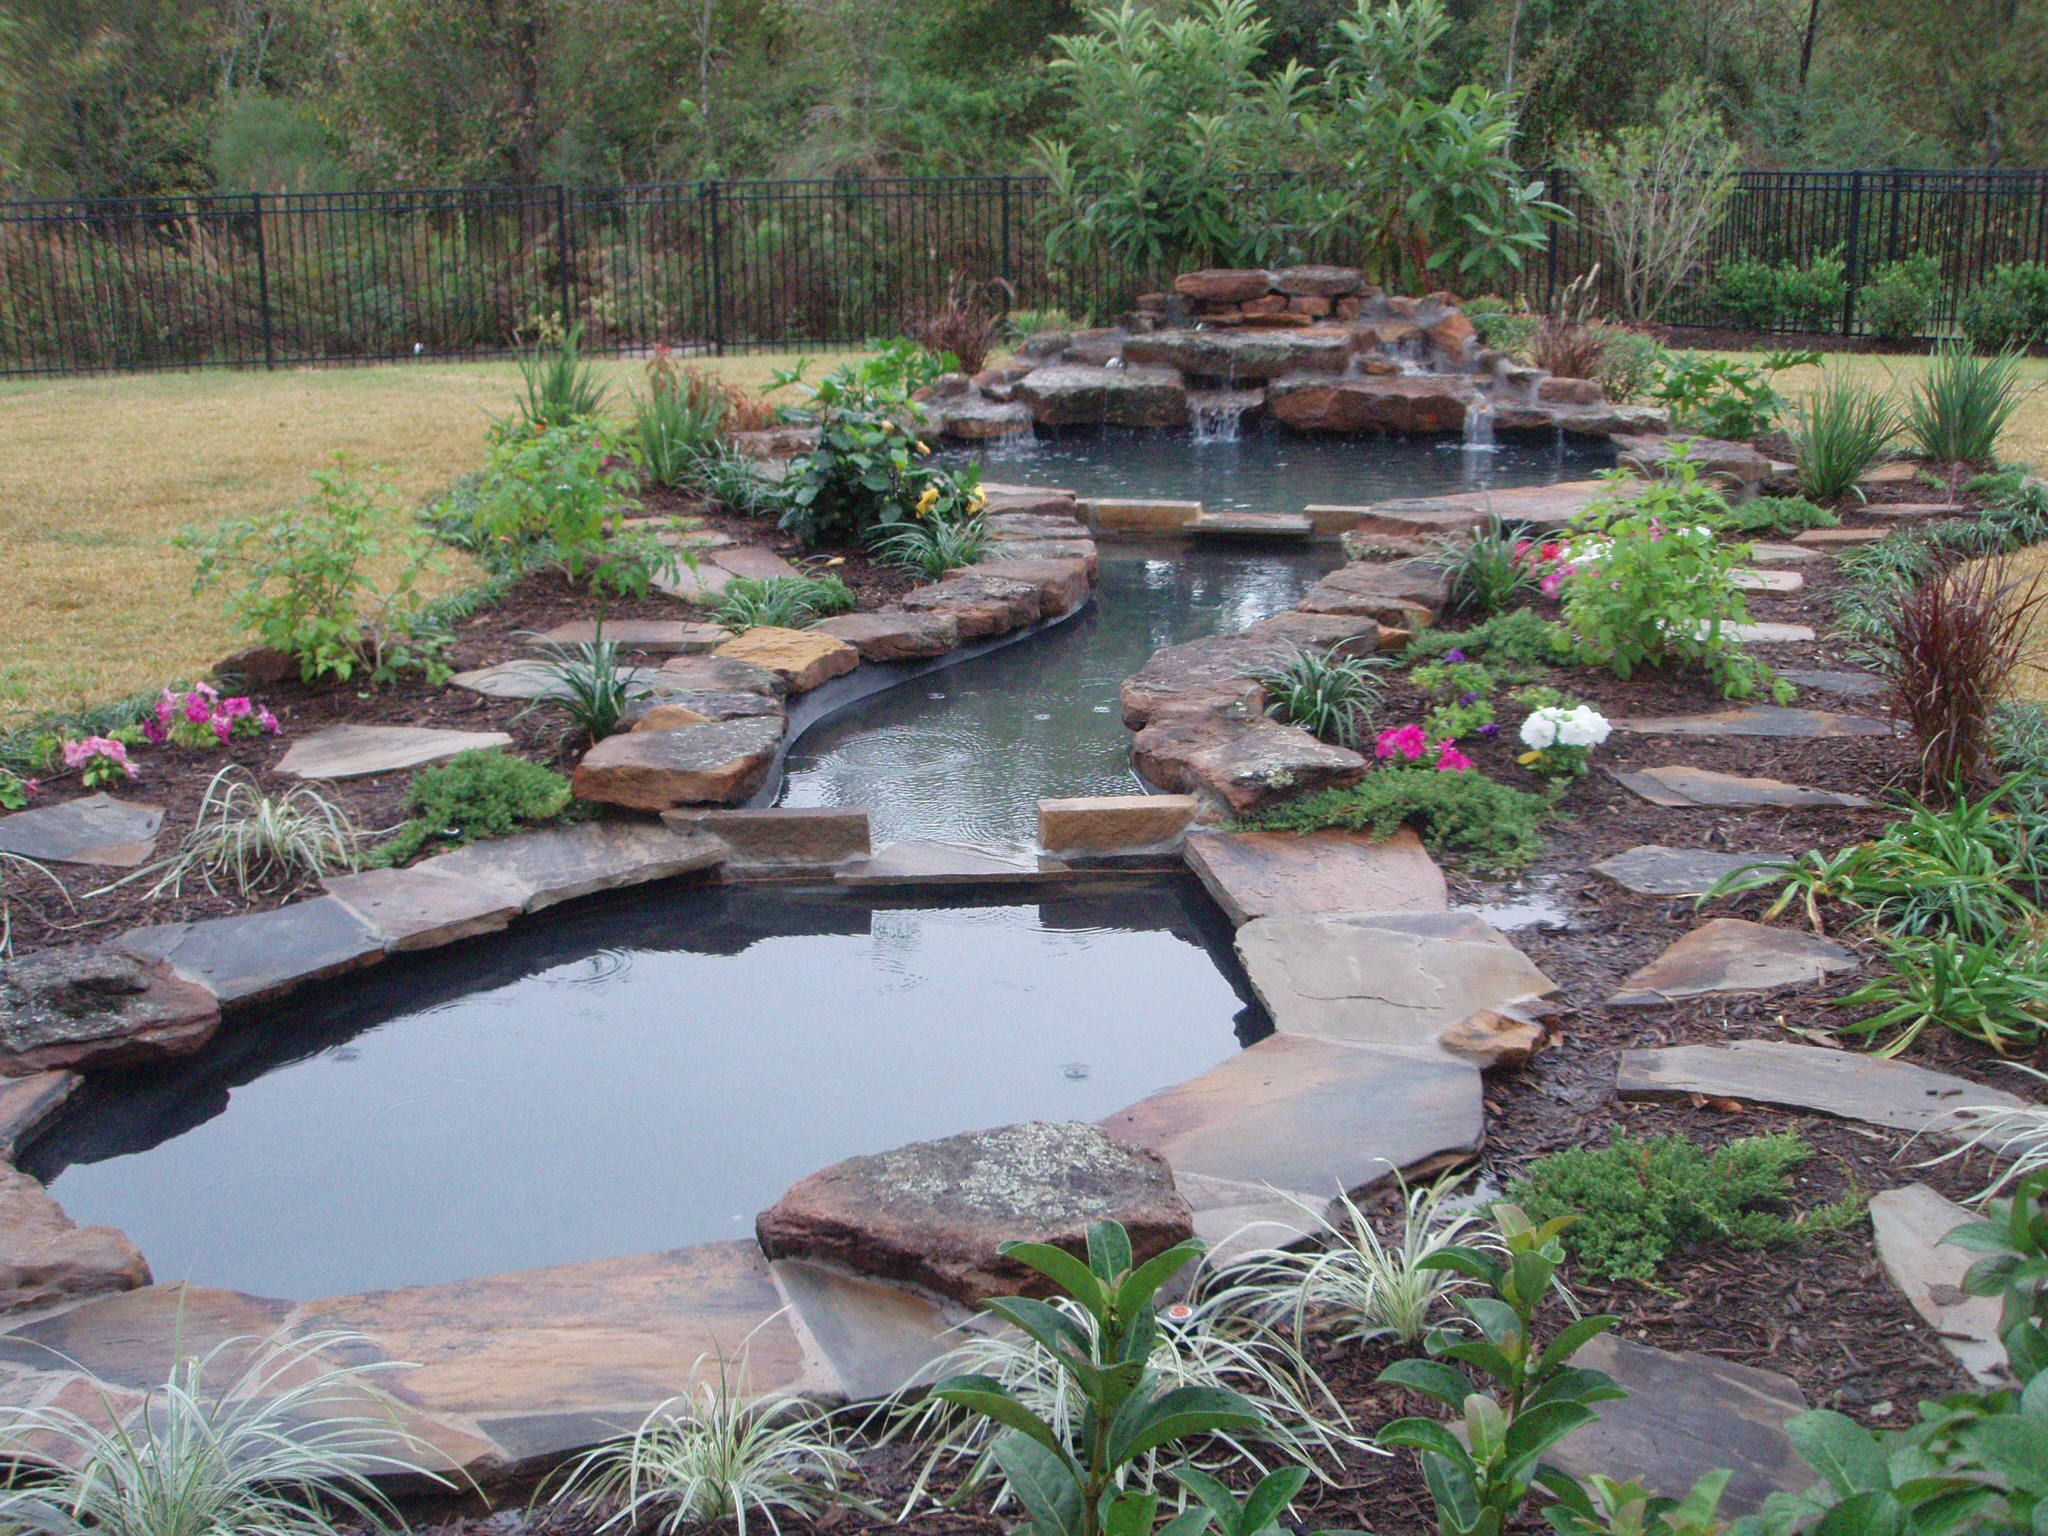 Natural Pond Landscaping Home Garden Ideas Large Garden Pond With Waterfall Ideas Design